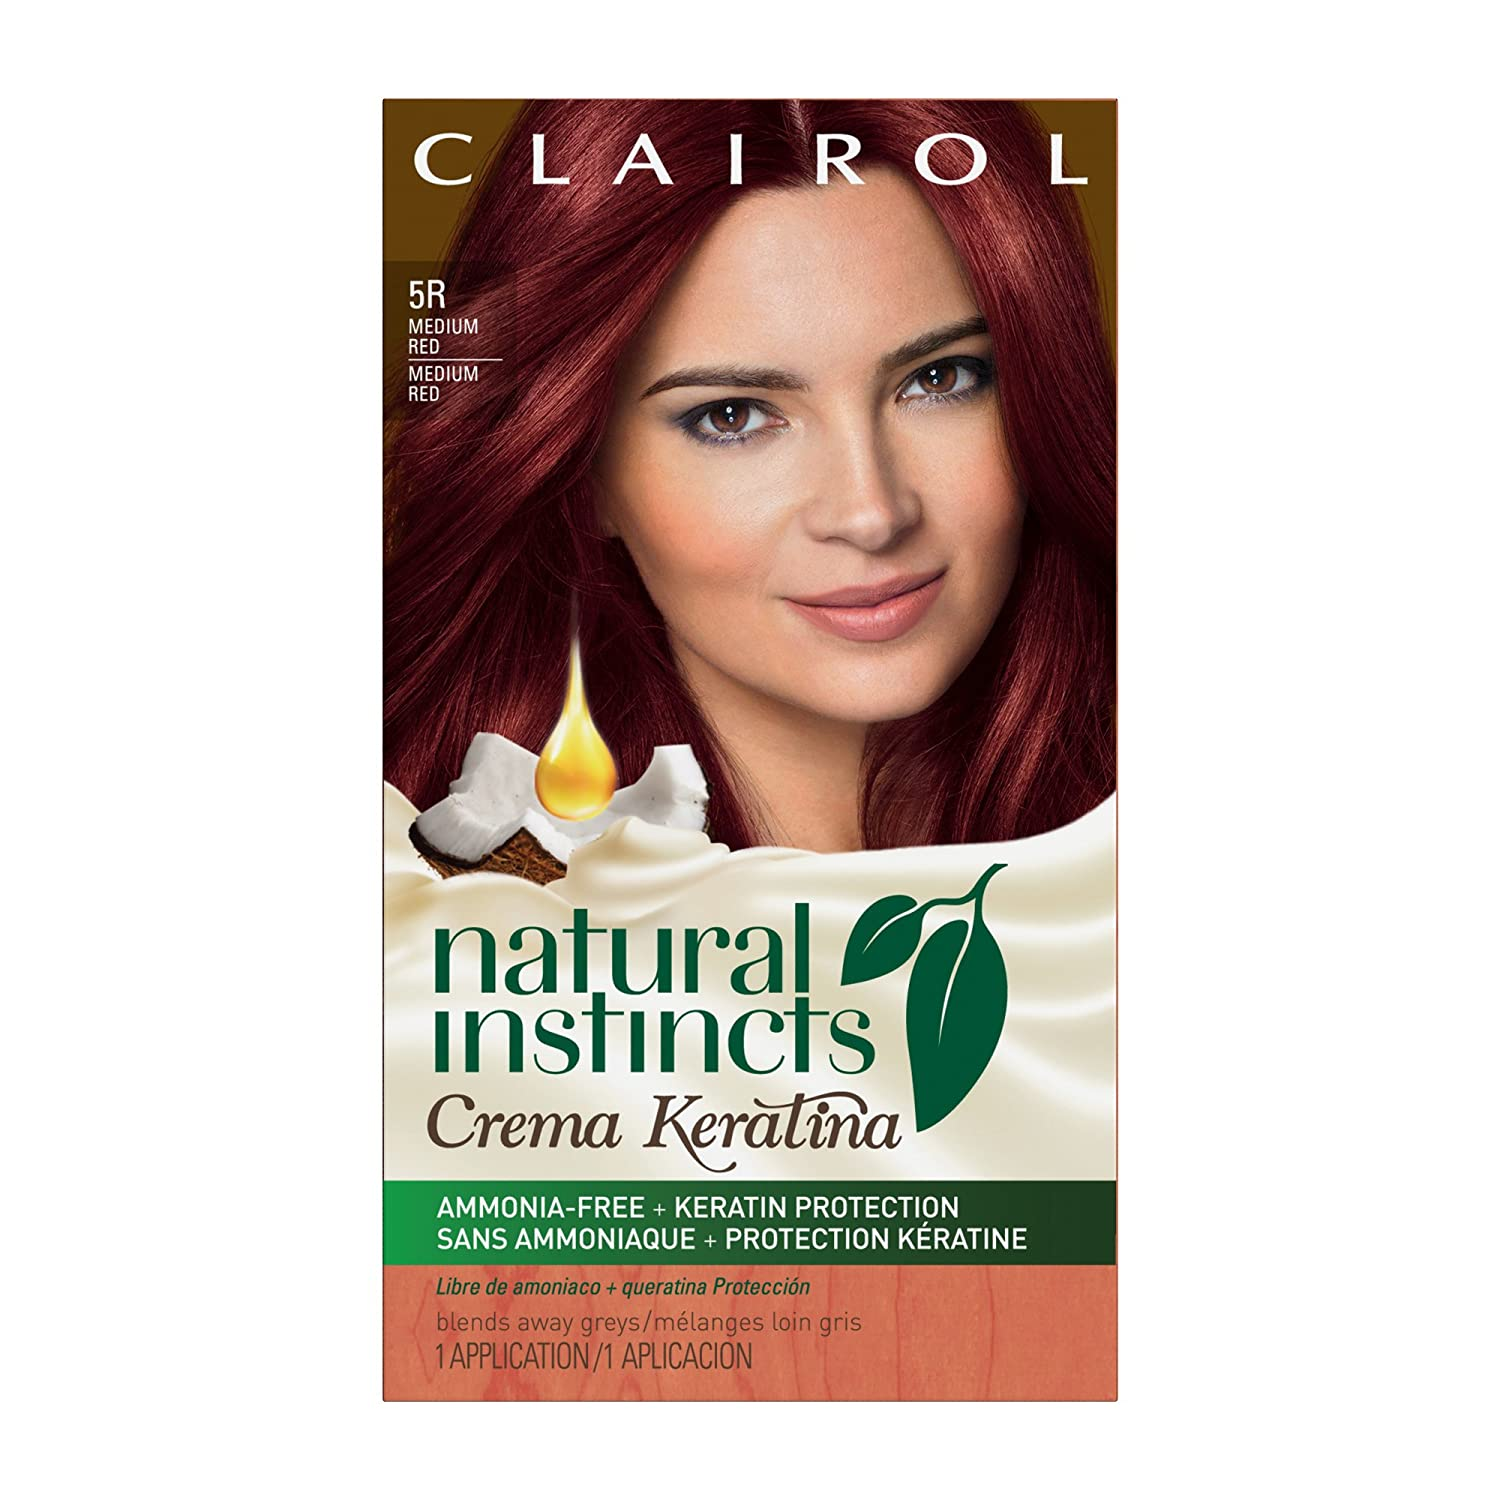 Amazon Clairol Natural Instincts Crema Keratina Hair Color Kit